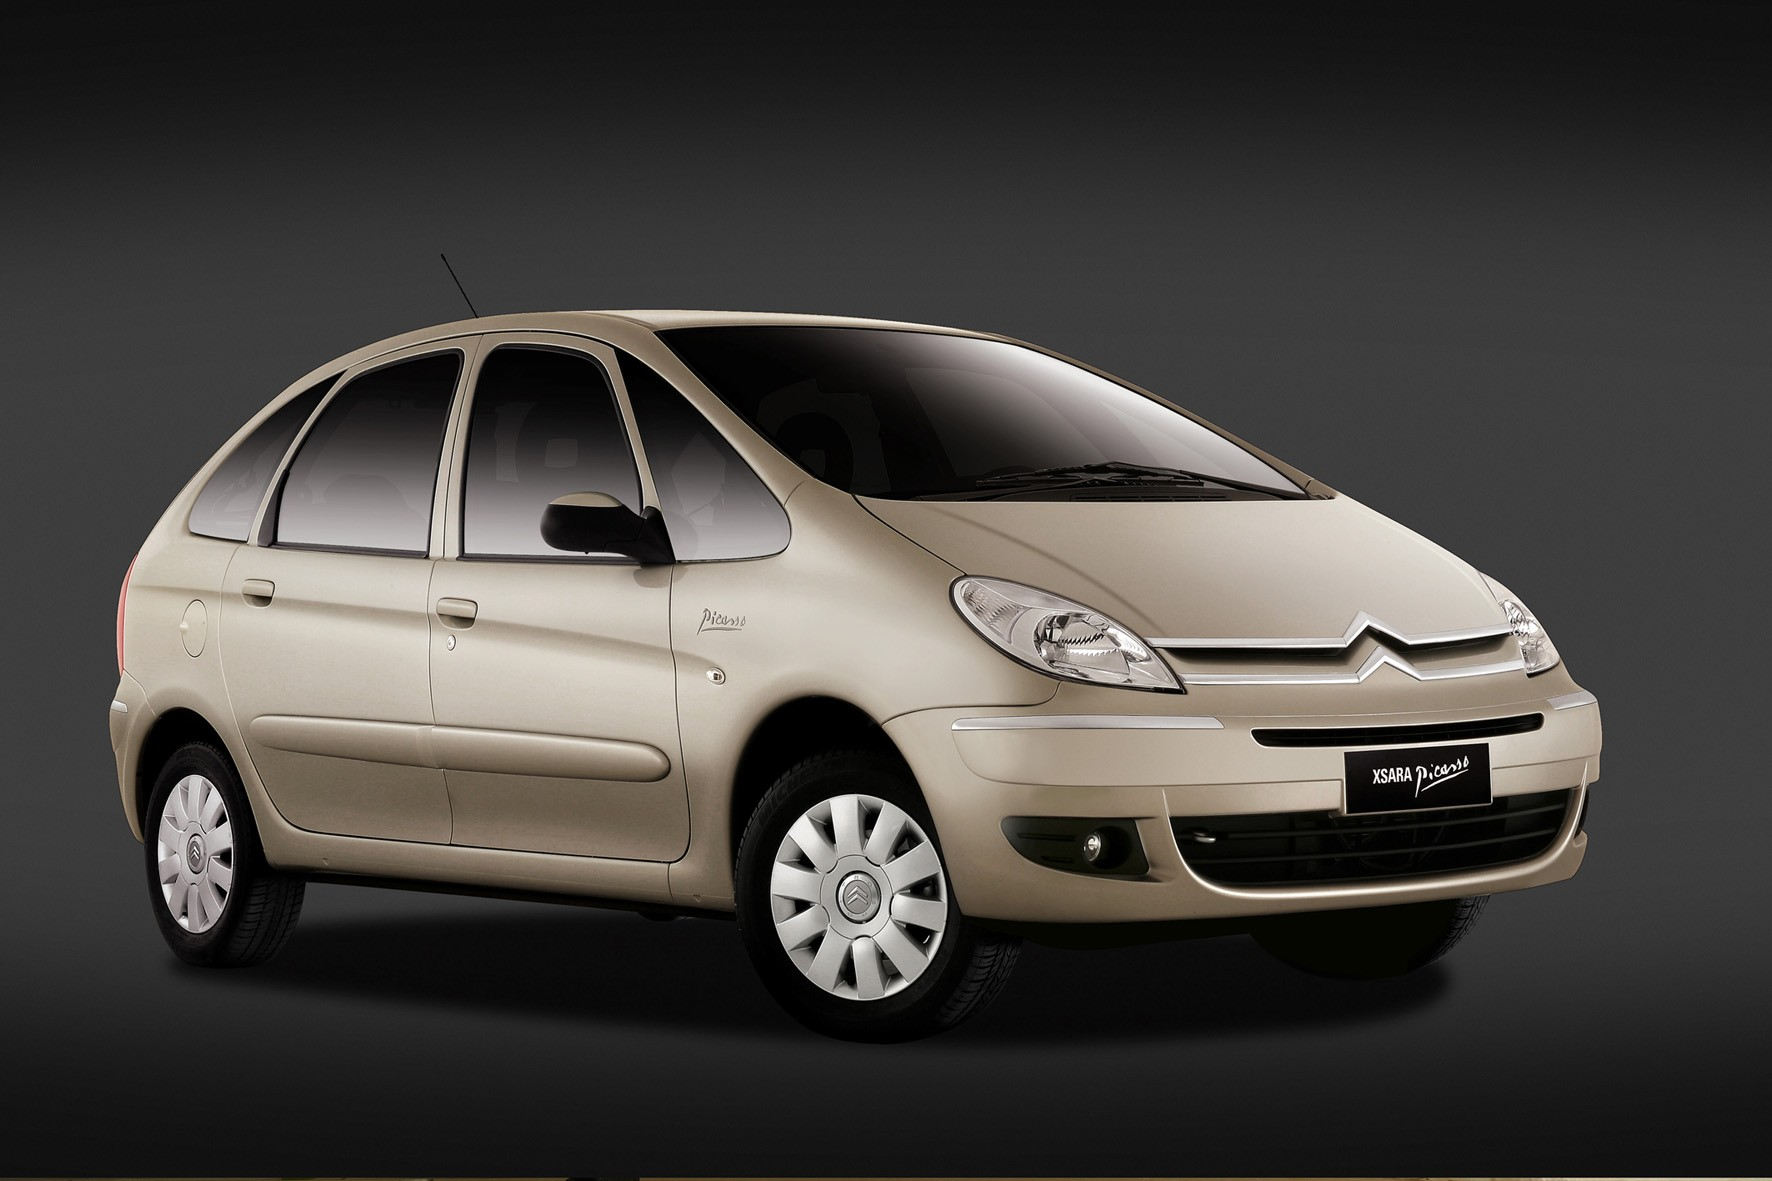 citroen xsara picasso review and photos. Black Bedroom Furniture Sets. Home Design Ideas